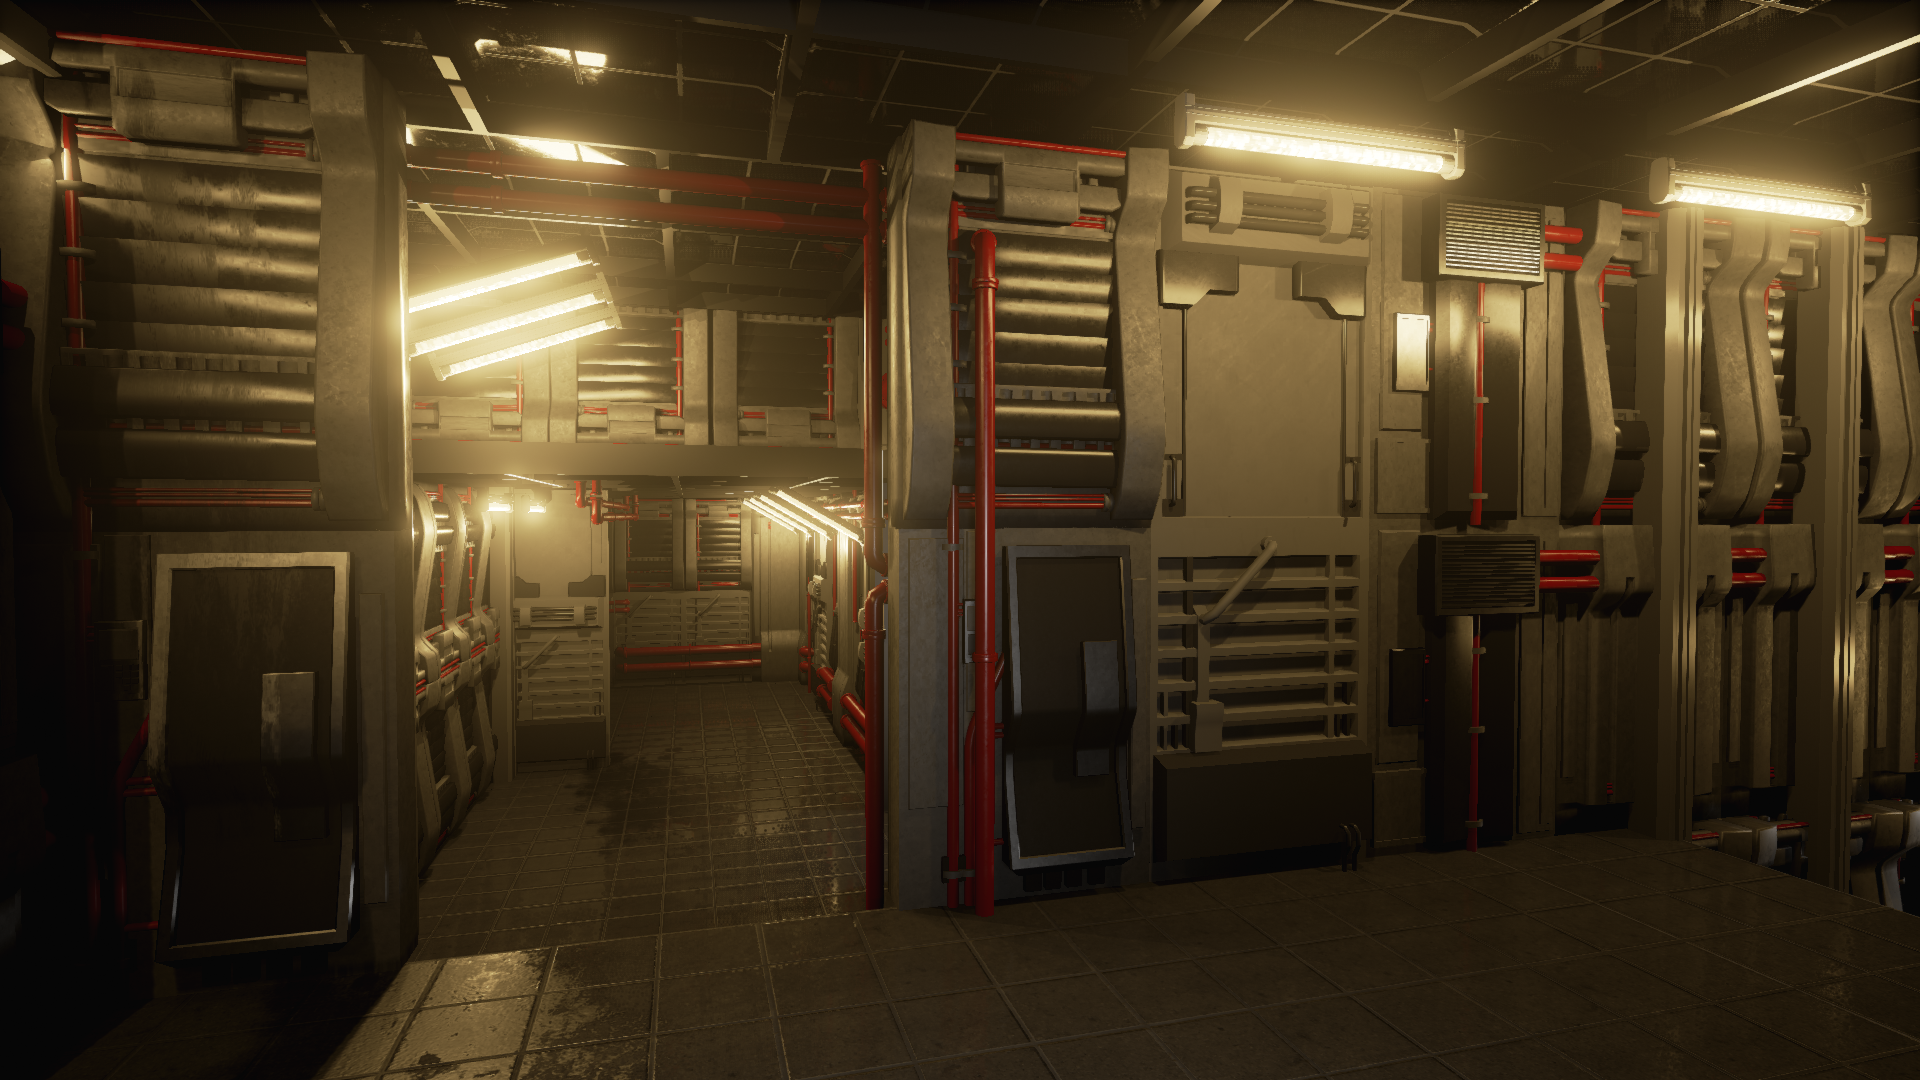 Hallway Modkit -Rendered in realtime in Unreal4 -2015 -Additional assets by Lauren Toomey